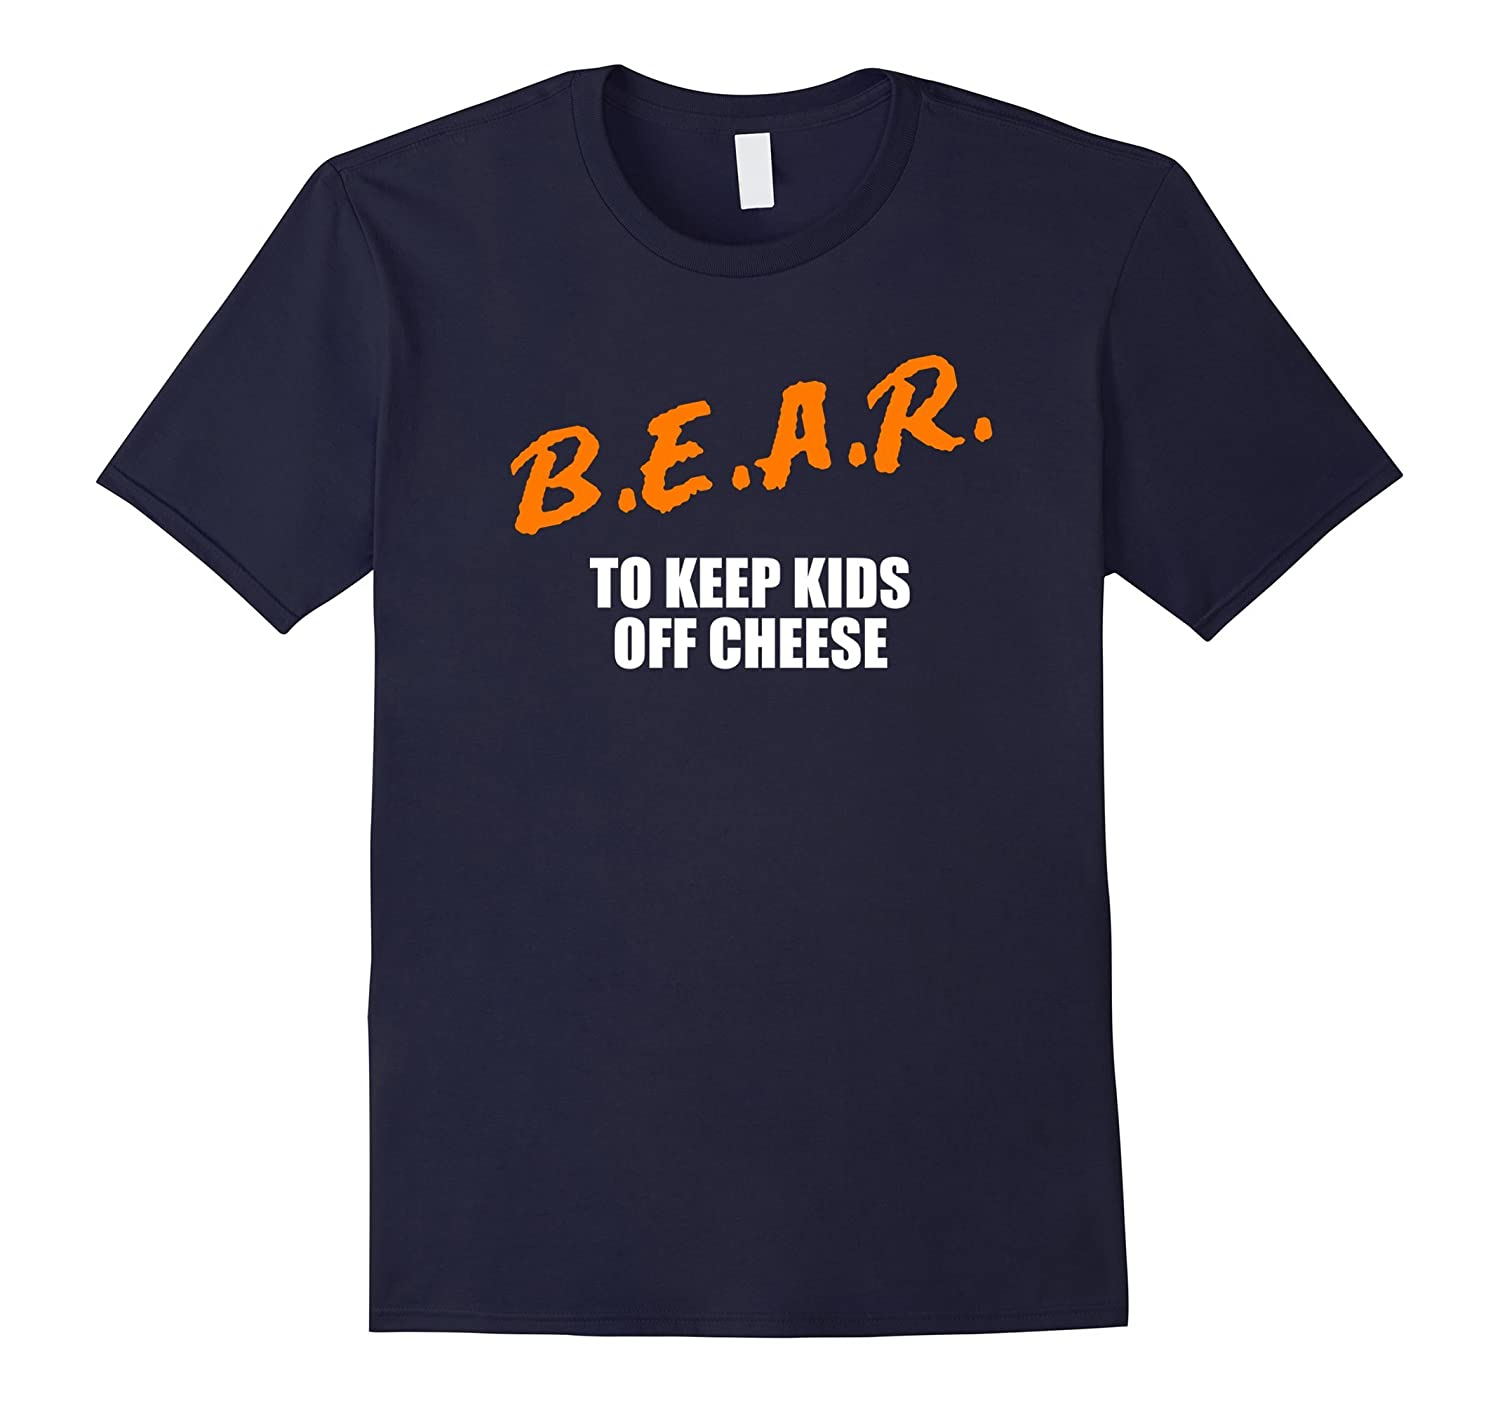 B.E.A.R. to Keep Kids Off Cheese Chicago rivalry t-shirt-ANZ